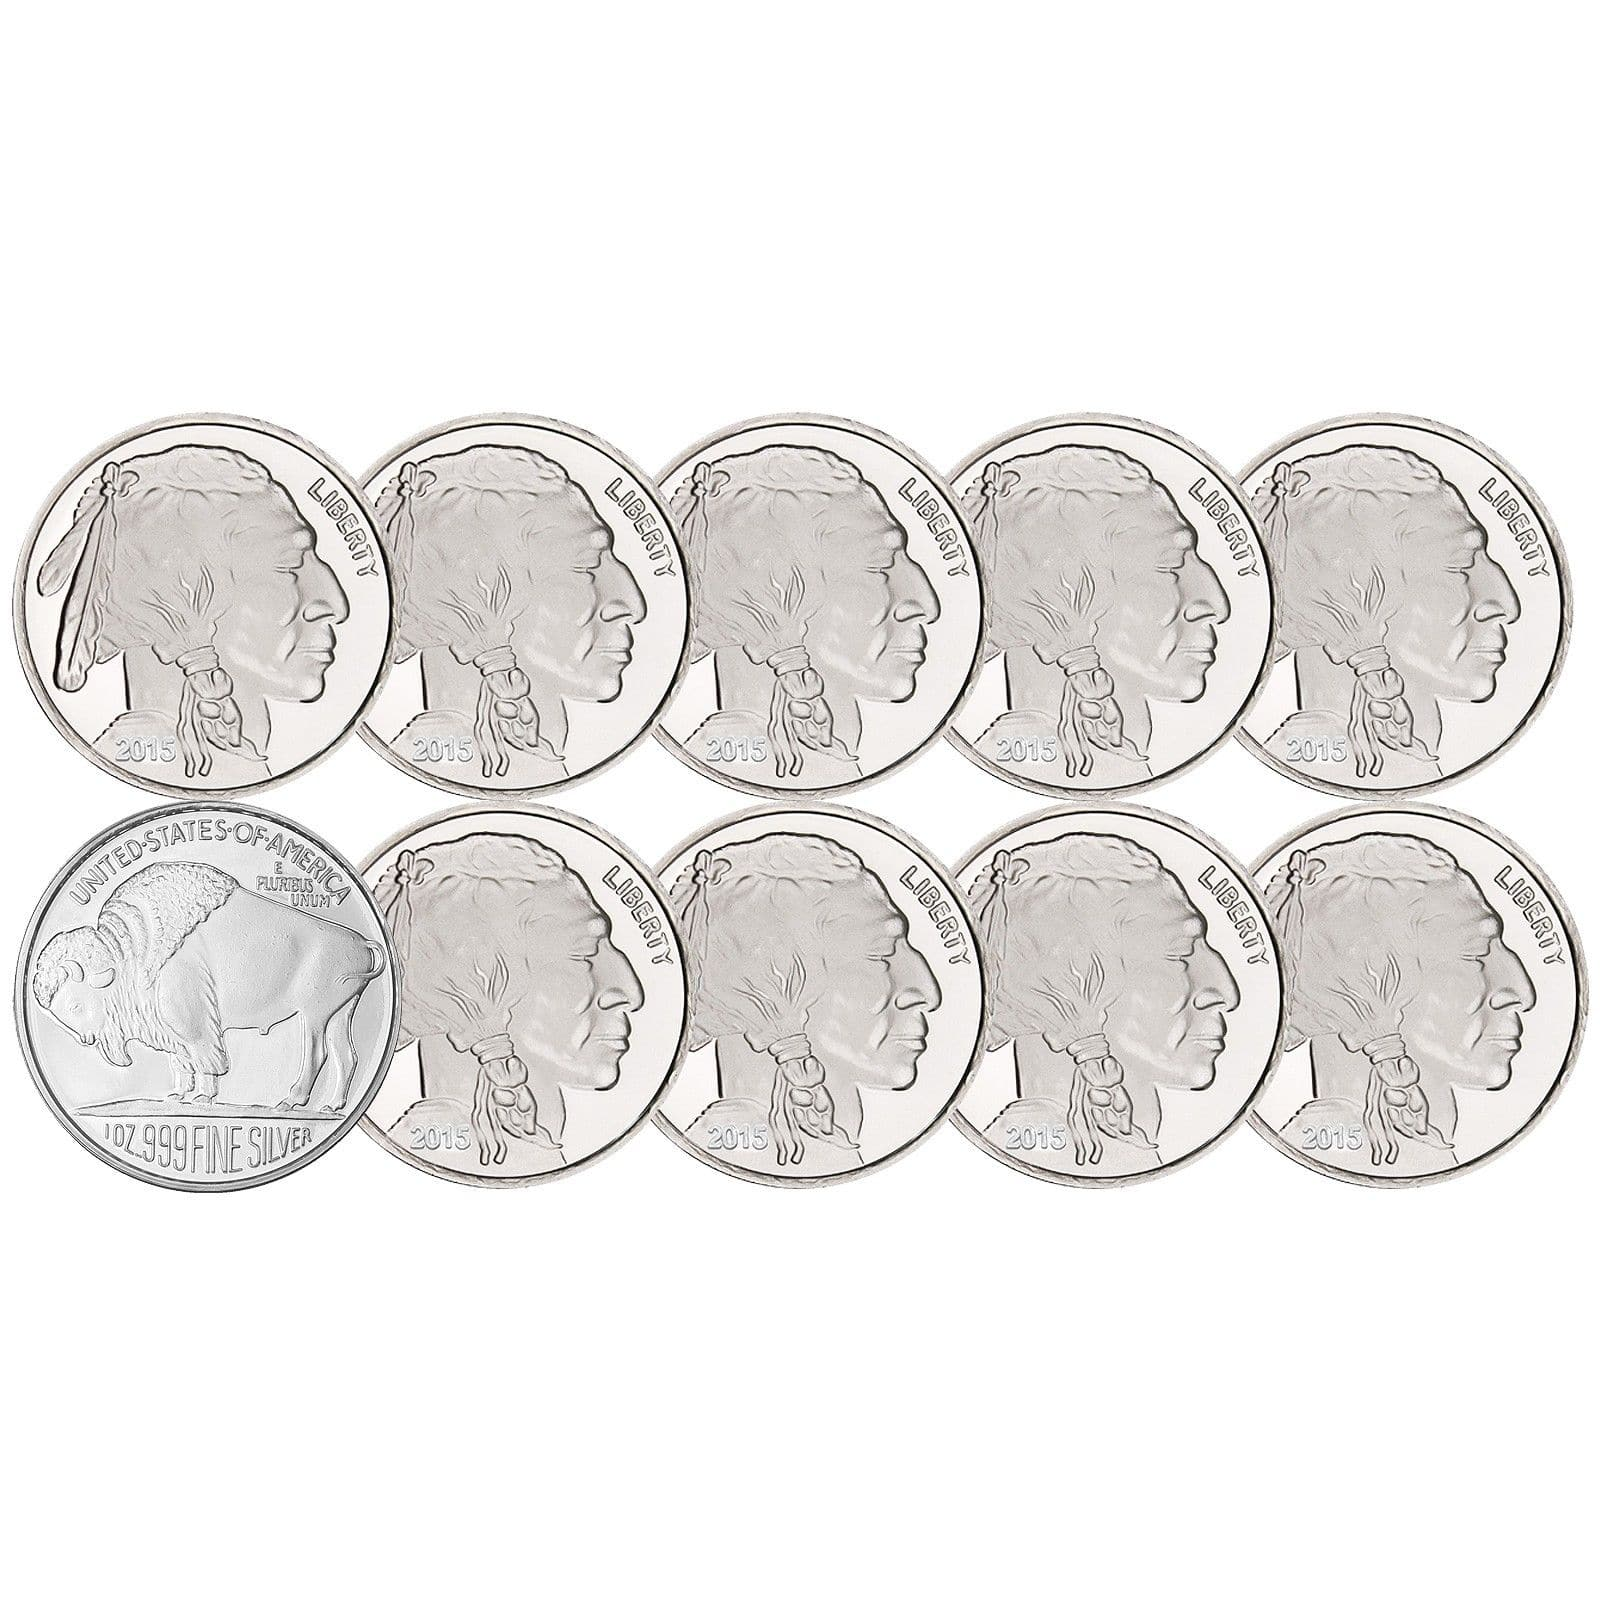 eBay Silver/Gold Deals - American Silver Eagles (Lot of 10) = $206.99; 1oz Bars/Rounds (Lot of 10) = $188.99; Maple Leafs (Lot of 10) $209.95; 1 oz Gold Bar = $1,234.99